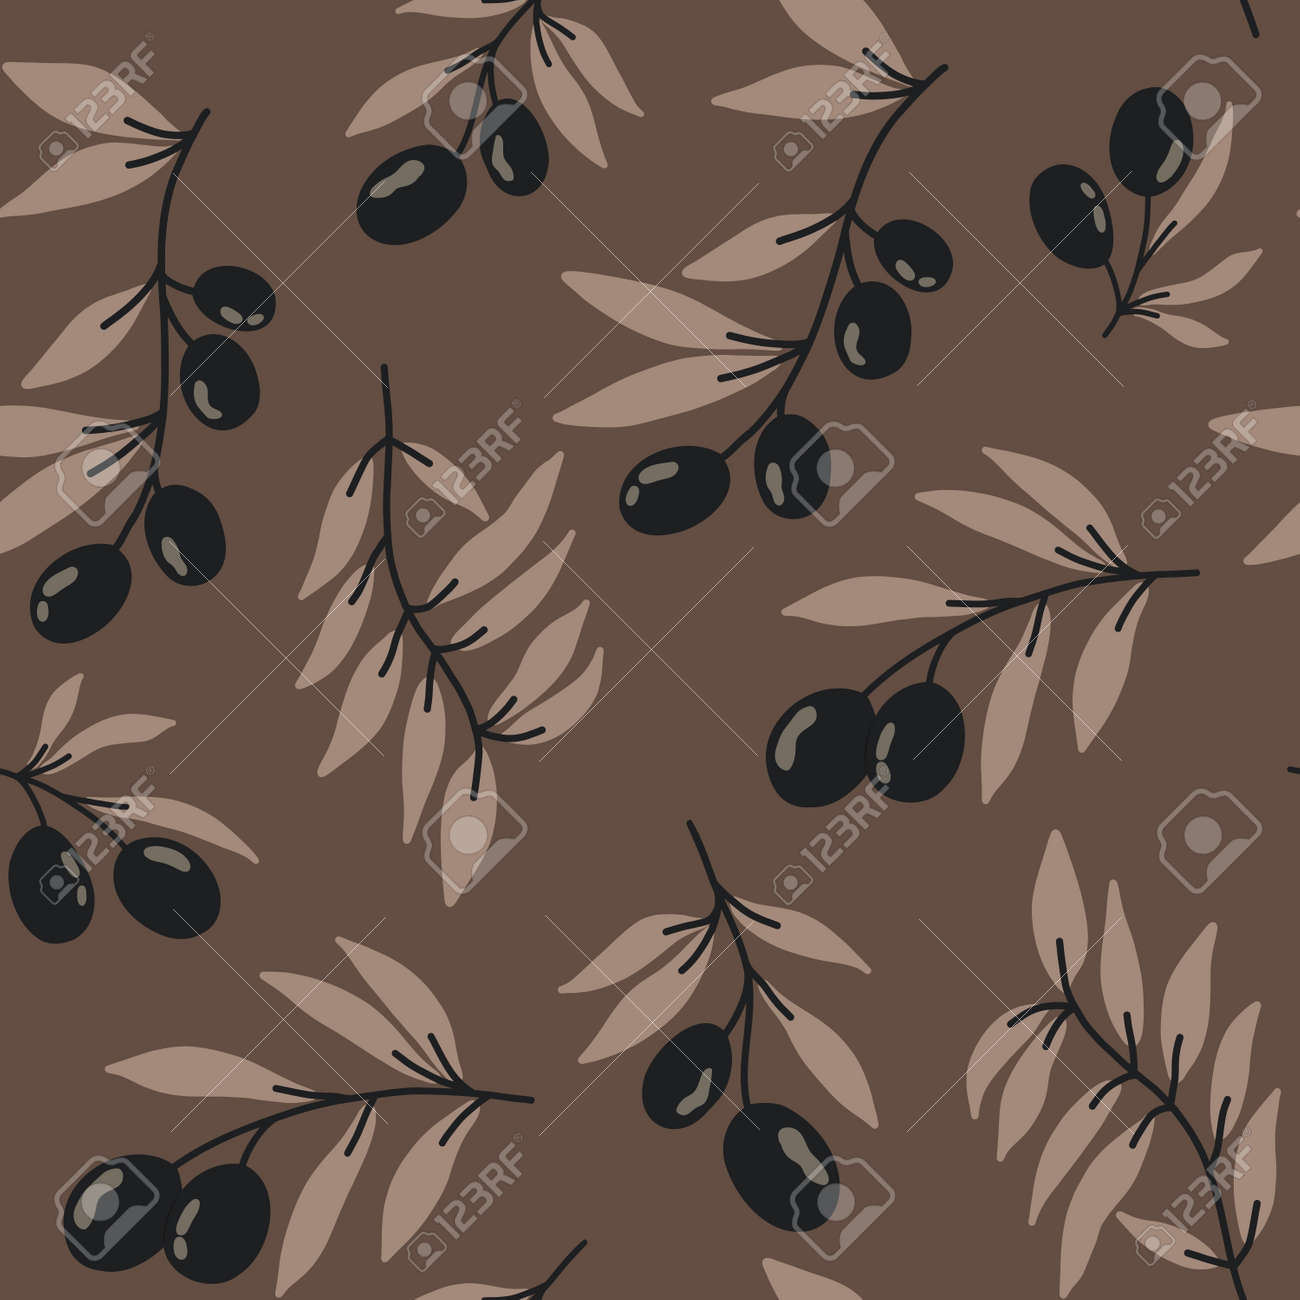 Vector seamless pattern with black olives on a brown background. Stock illustration. Prints on fabric, printed matter and wrapping paper. For greeting cards. - 164801853